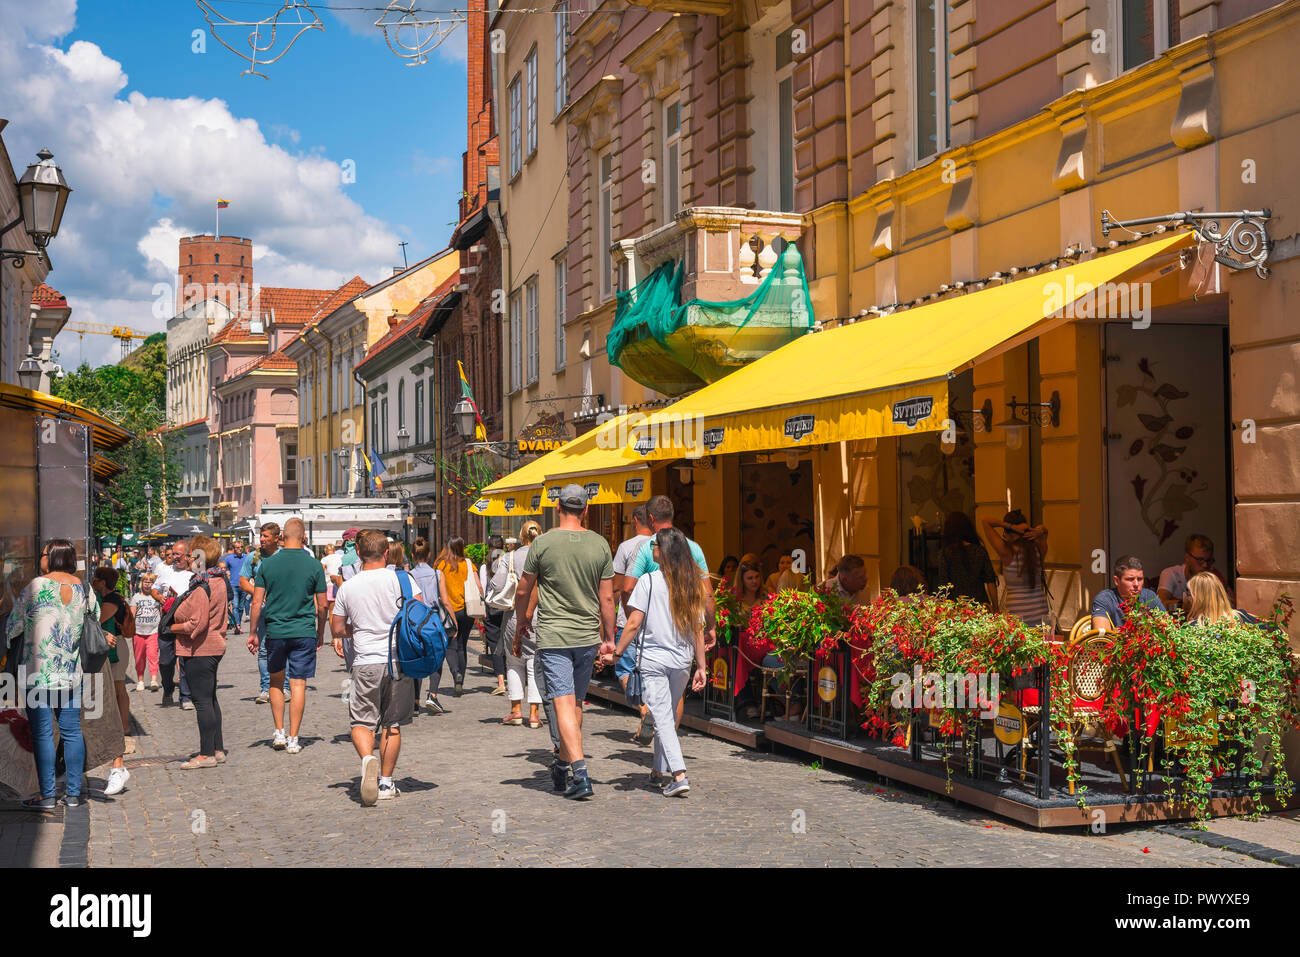 Vilnius old town, view in summer along Pilies Gatve - the main thoroughfare in the center of the historical Old Town quarter of Vilnius, Lithuania. Stock Photo